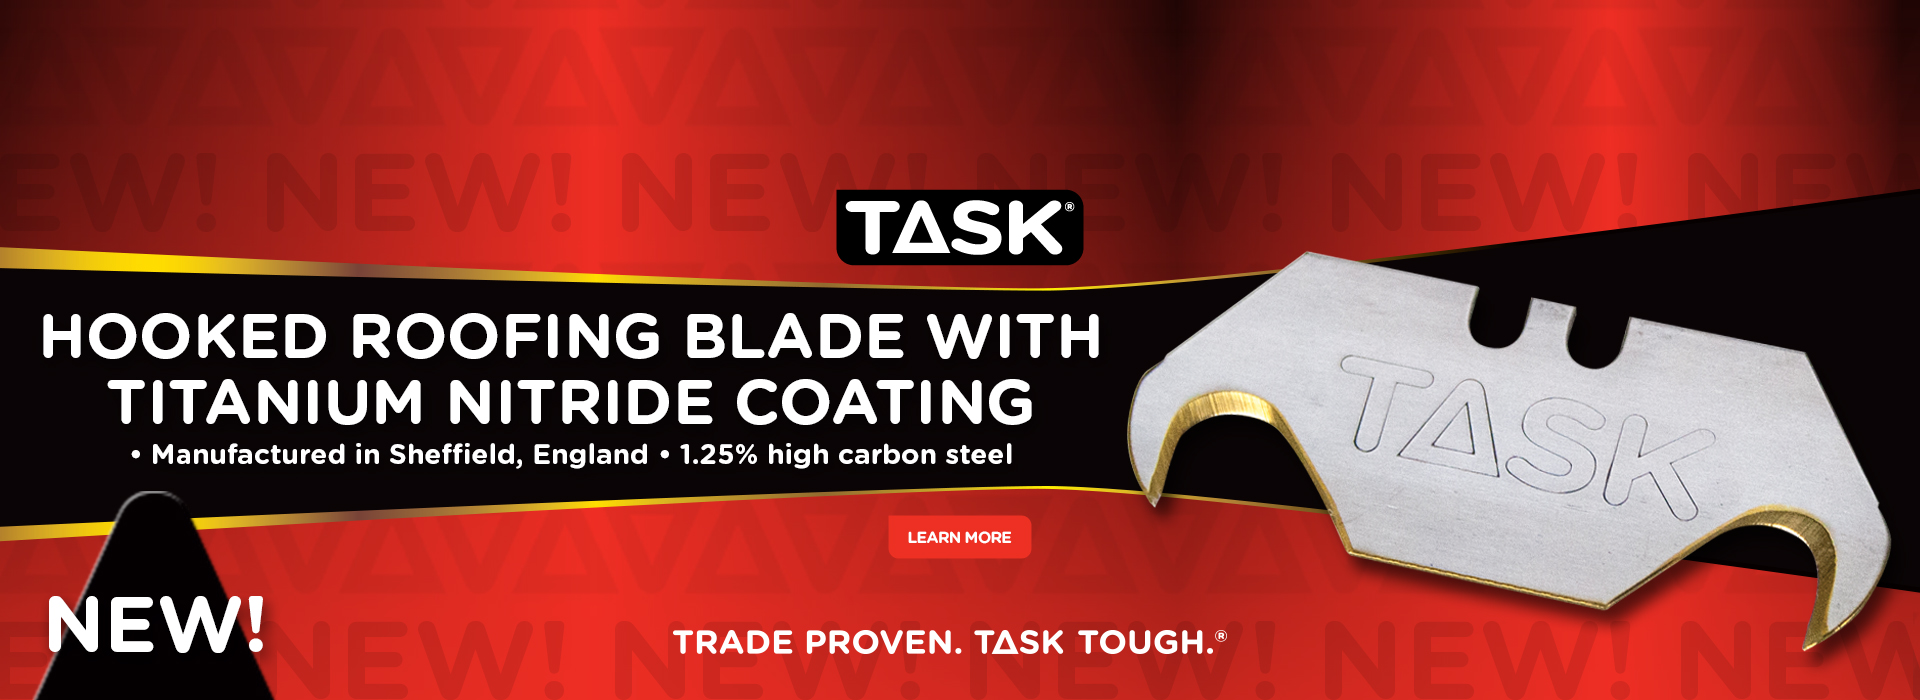 Roofing Blades